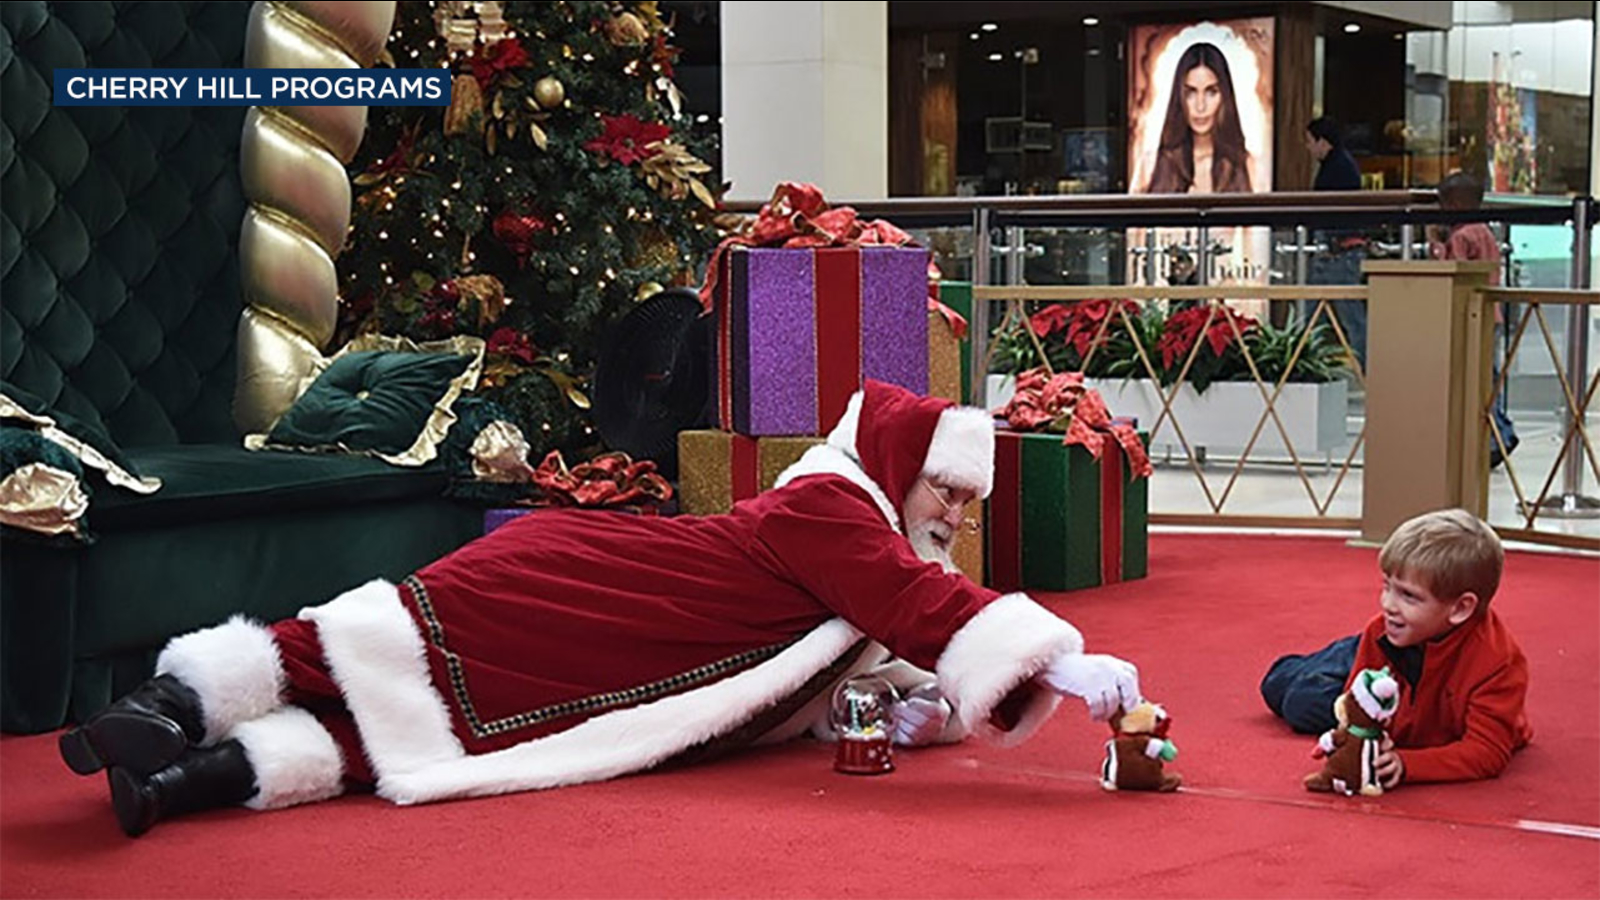 Special visit with Santa available in SoCal for children with autism